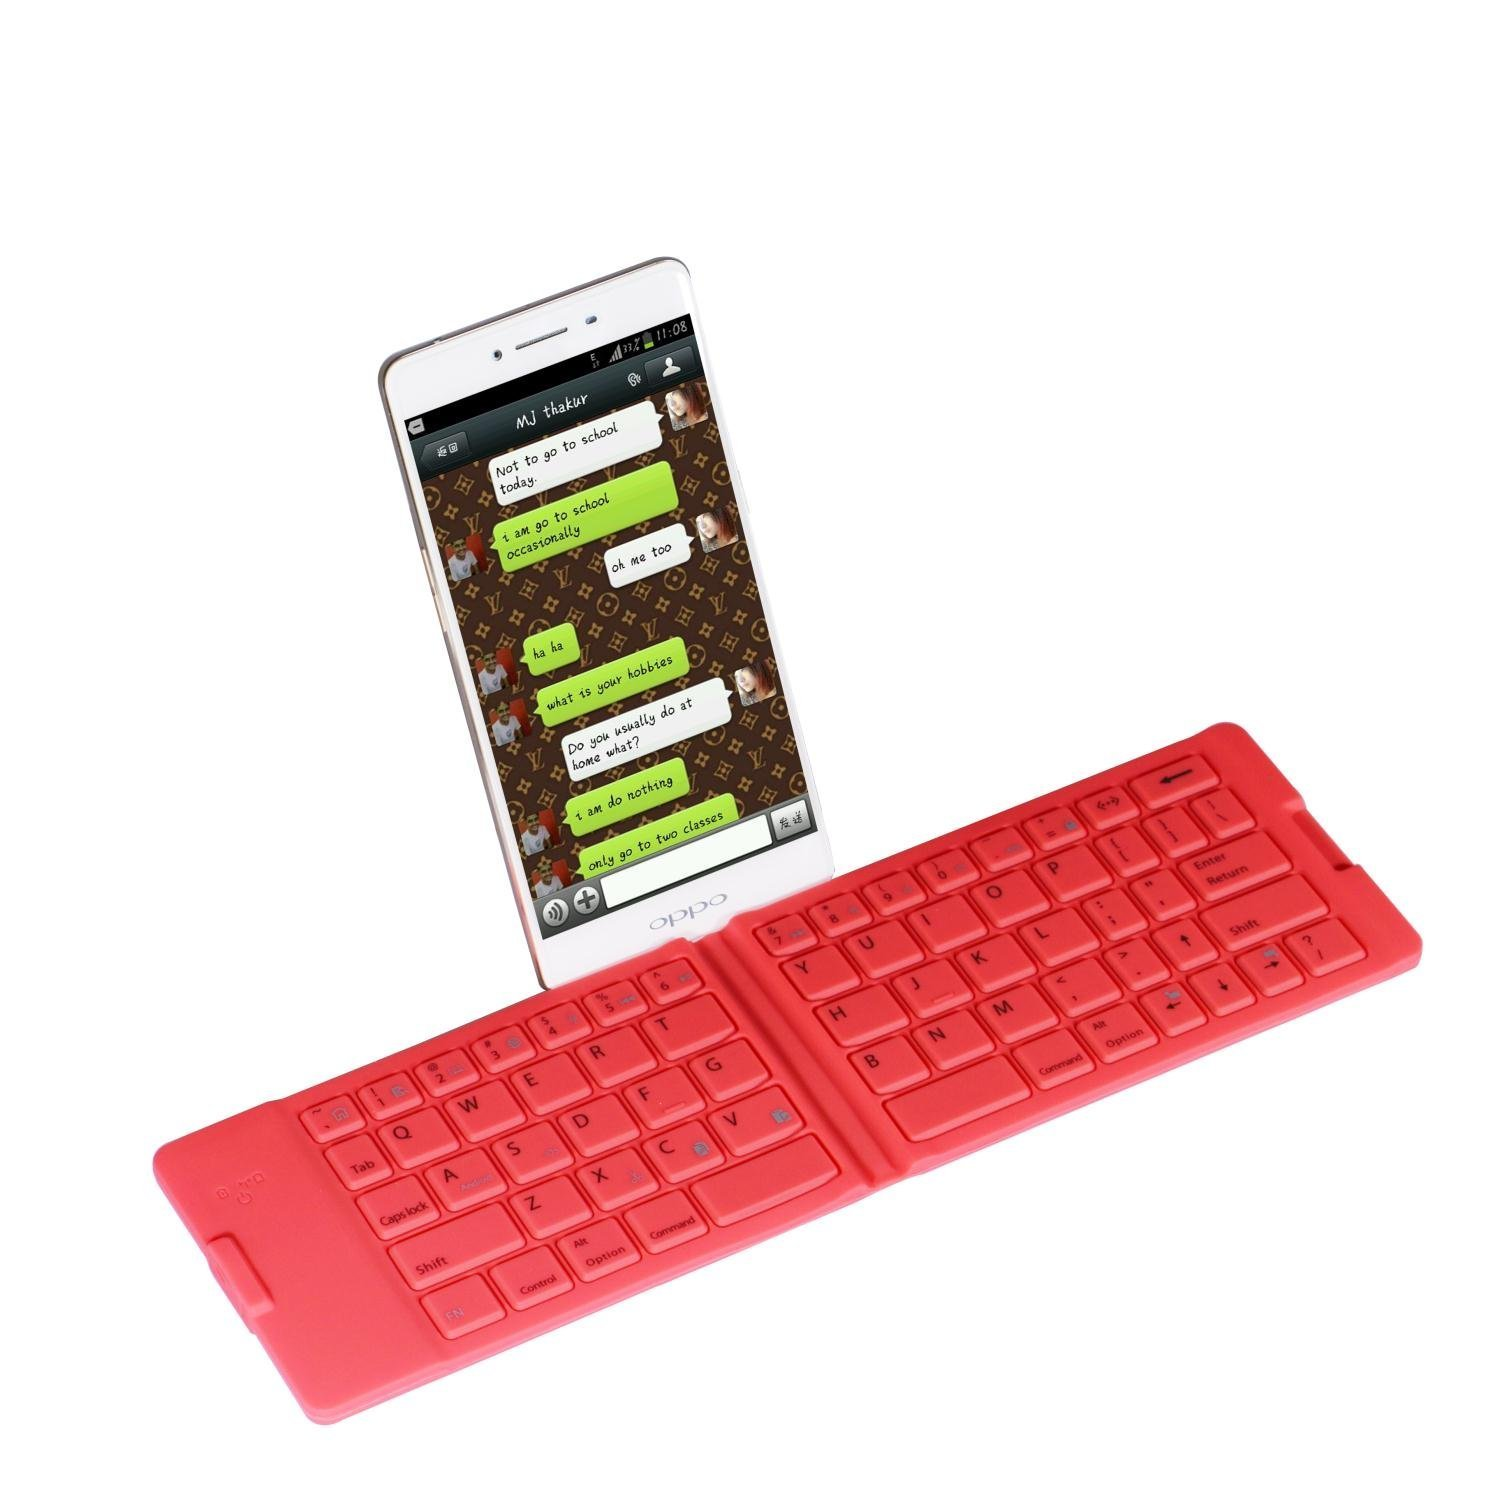 Compatible Android IOS//win10 Mobile Phone Flat Silicone Keyboard Color : Yellow Hexiaoyi Portable Folding Bluetooth Keyboard